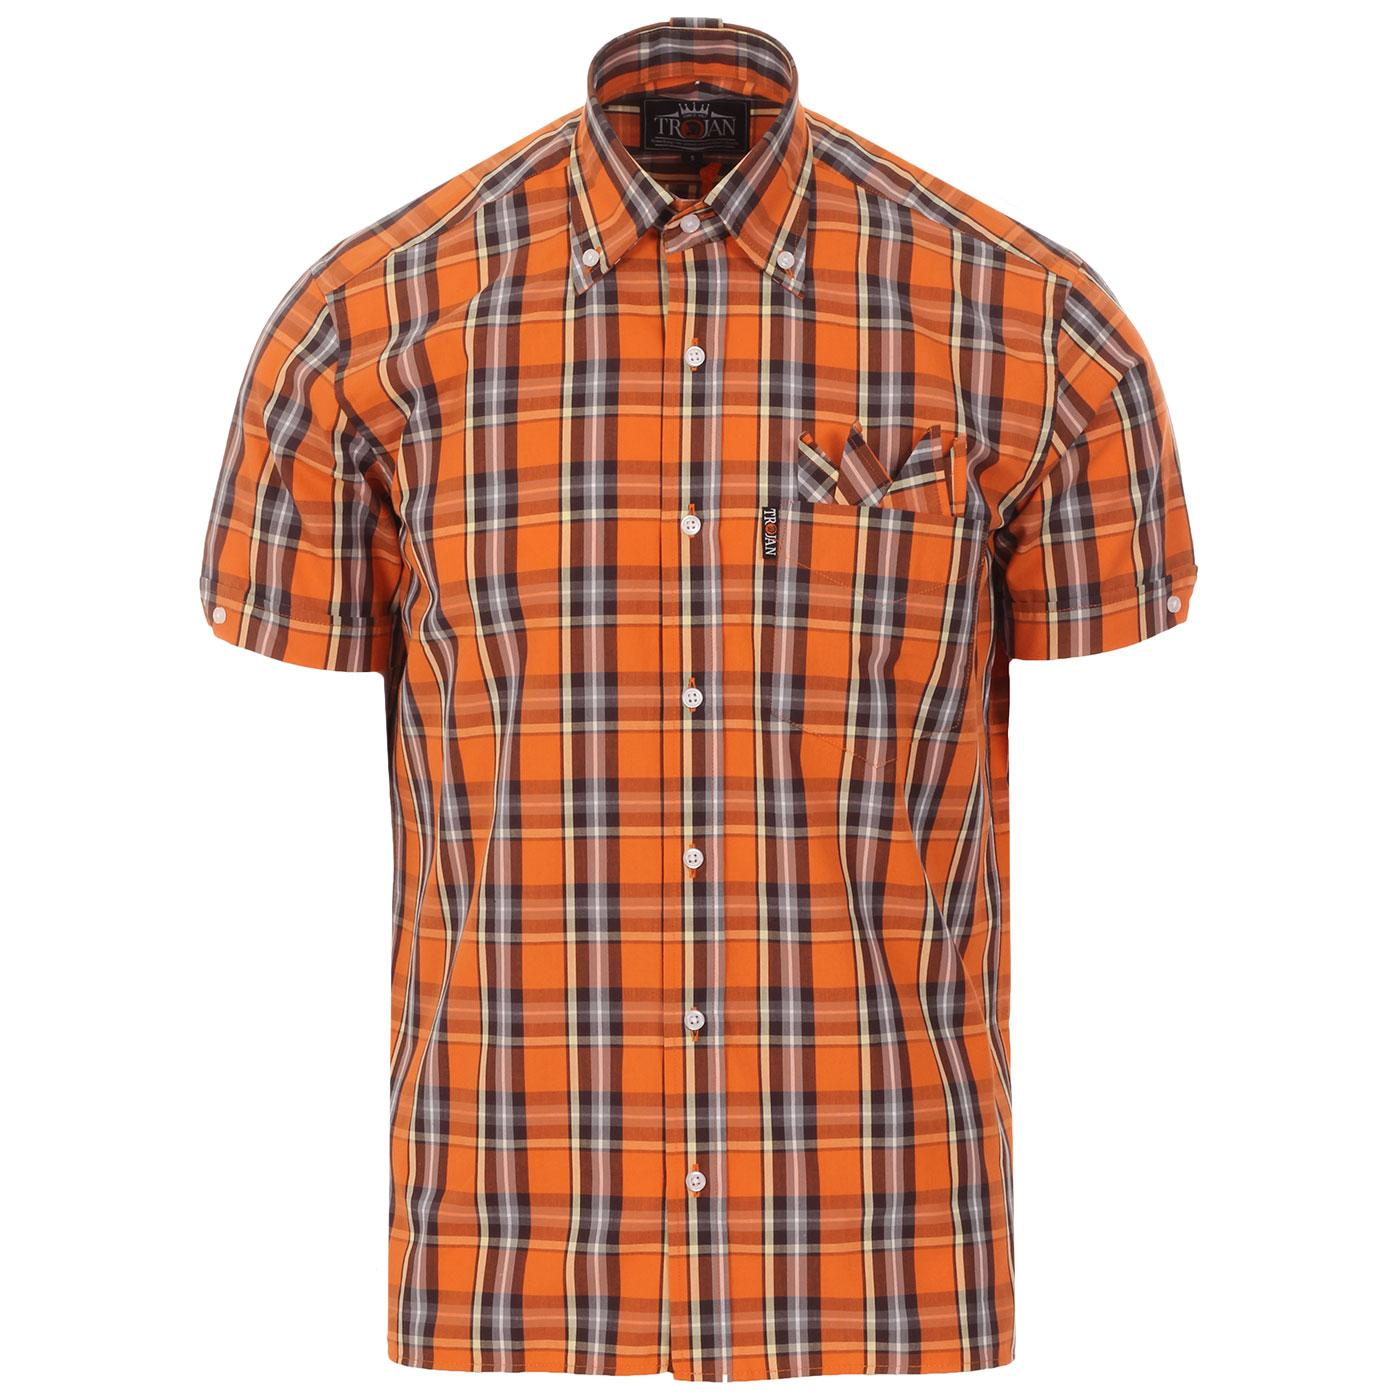 TROJAN RECORDS Mod Ska Plaid Check Shirt (Orange)